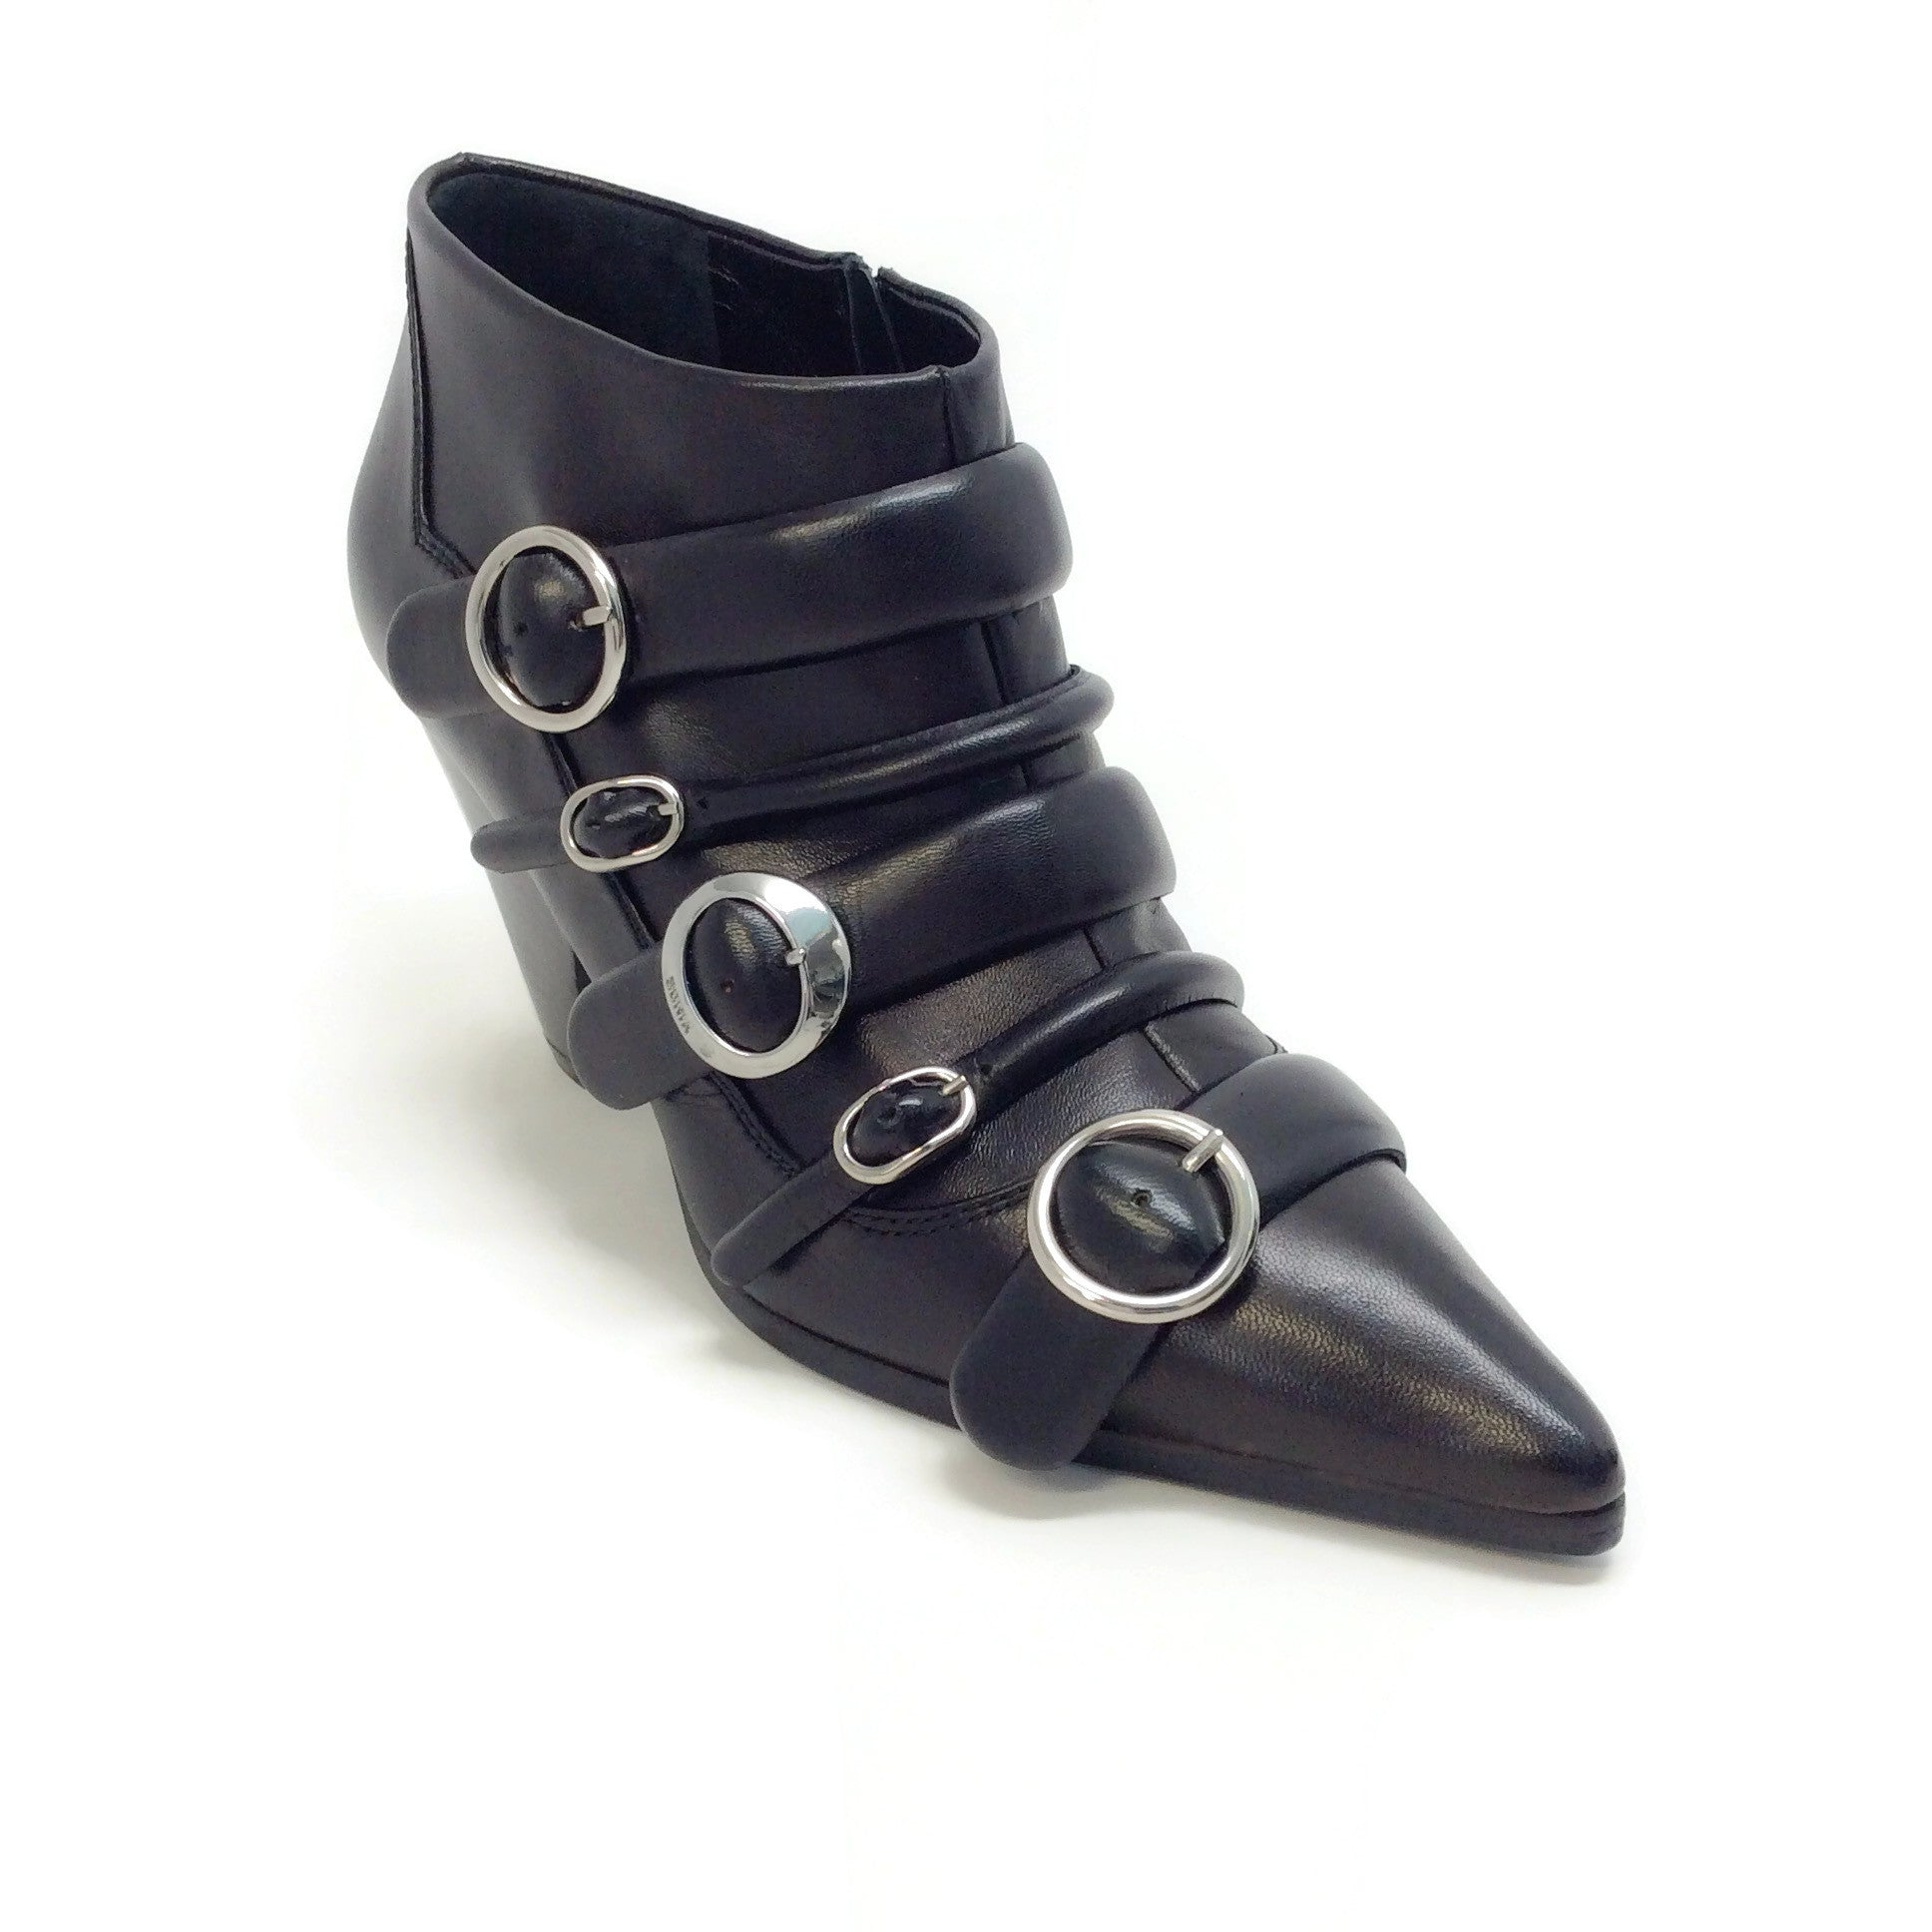 Sonia Rykiel Black Leather Multi Buckle Ankle Boots